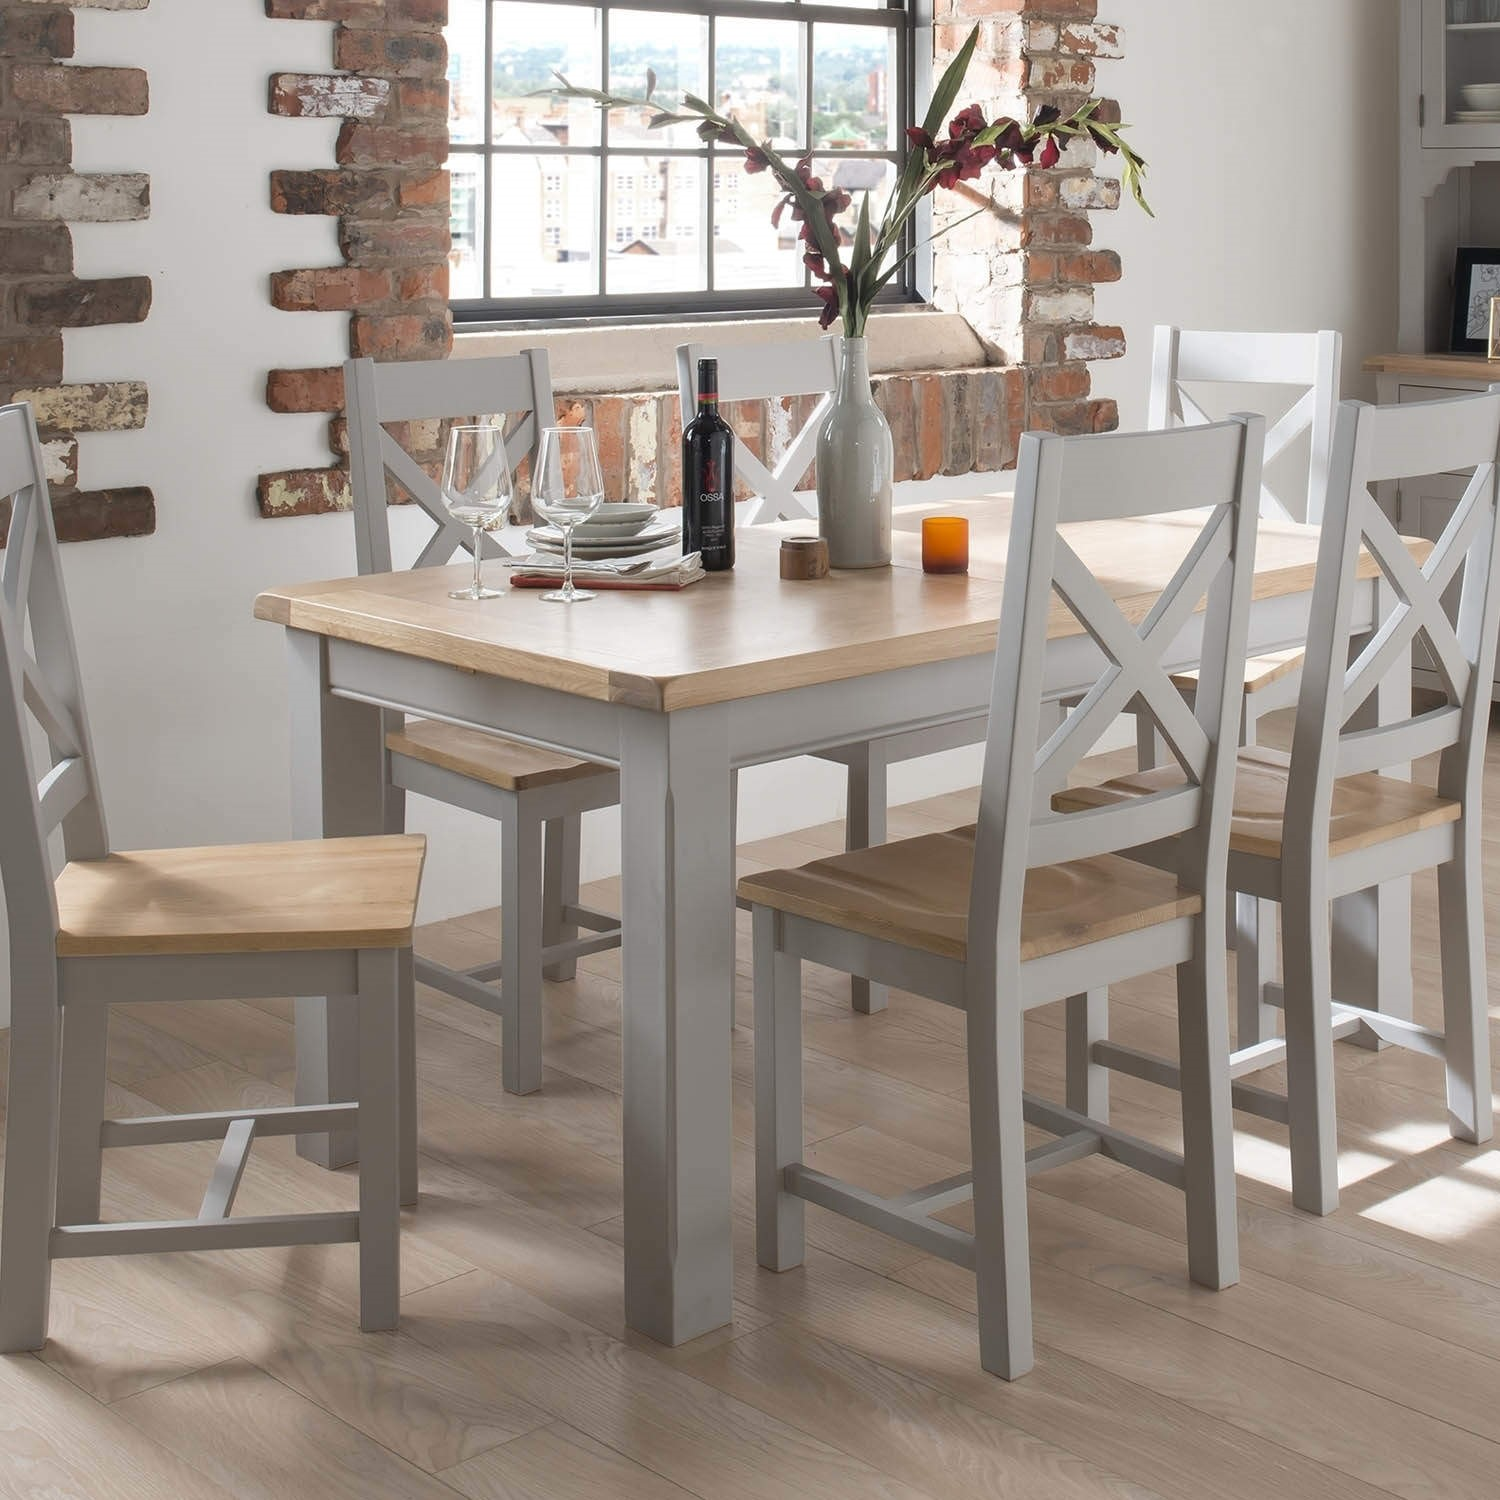 Awesome Grey Dining Room Furniture Part - 8: Wilkinson Furniture Clemence Soft Grey And Solid Oak Extending Dining Table  - 150-190cm